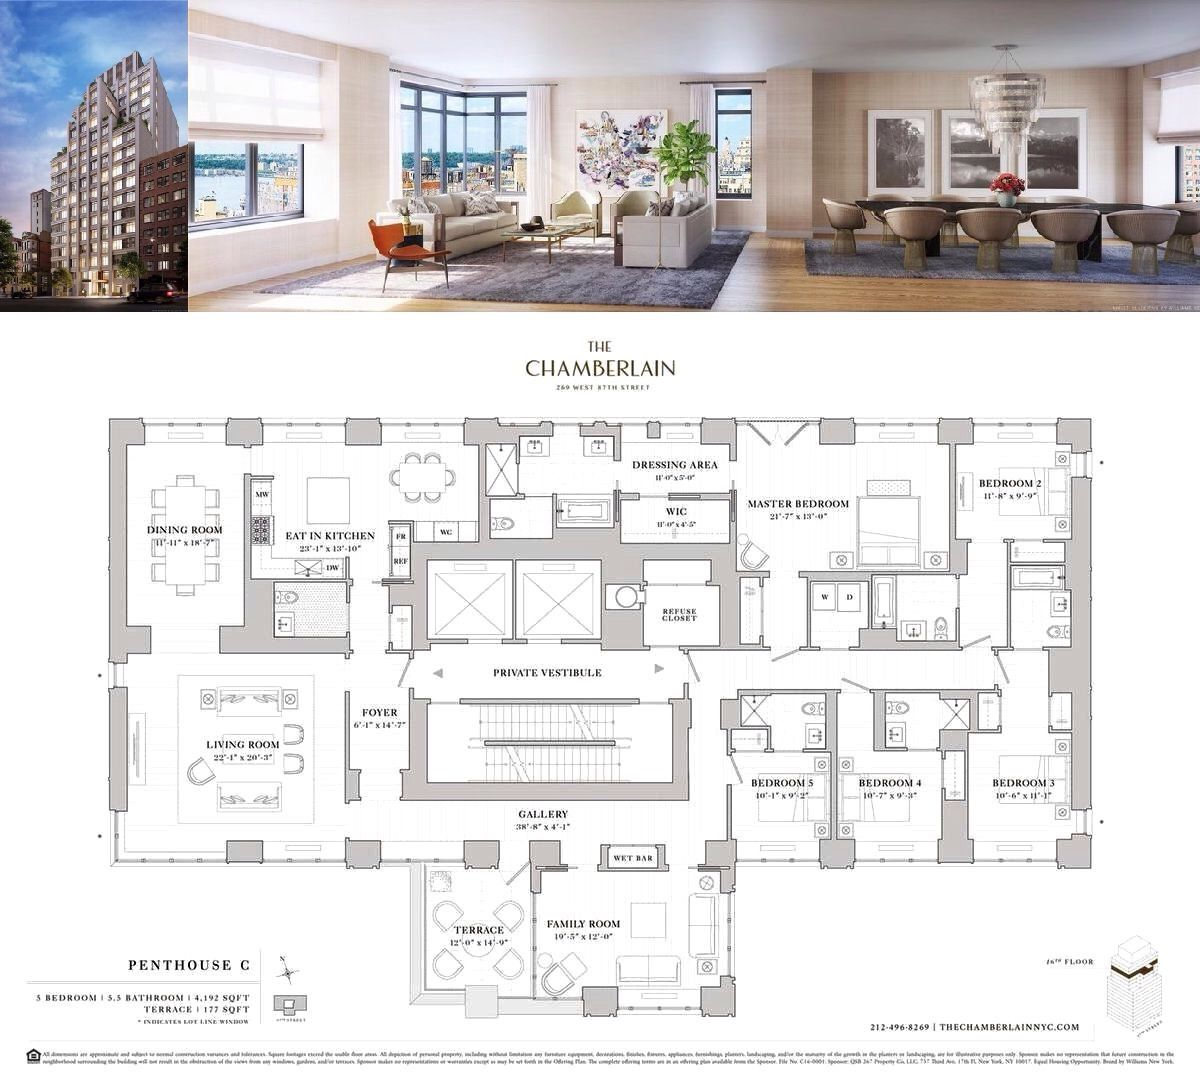 The Chamberlain S 4200 Square Foot Penthouse 3 Is A Distinctive Full Floor Home With 5 Bed Penthouse Apartment Floor Plan Condo Floor Plans Vintage House Plans